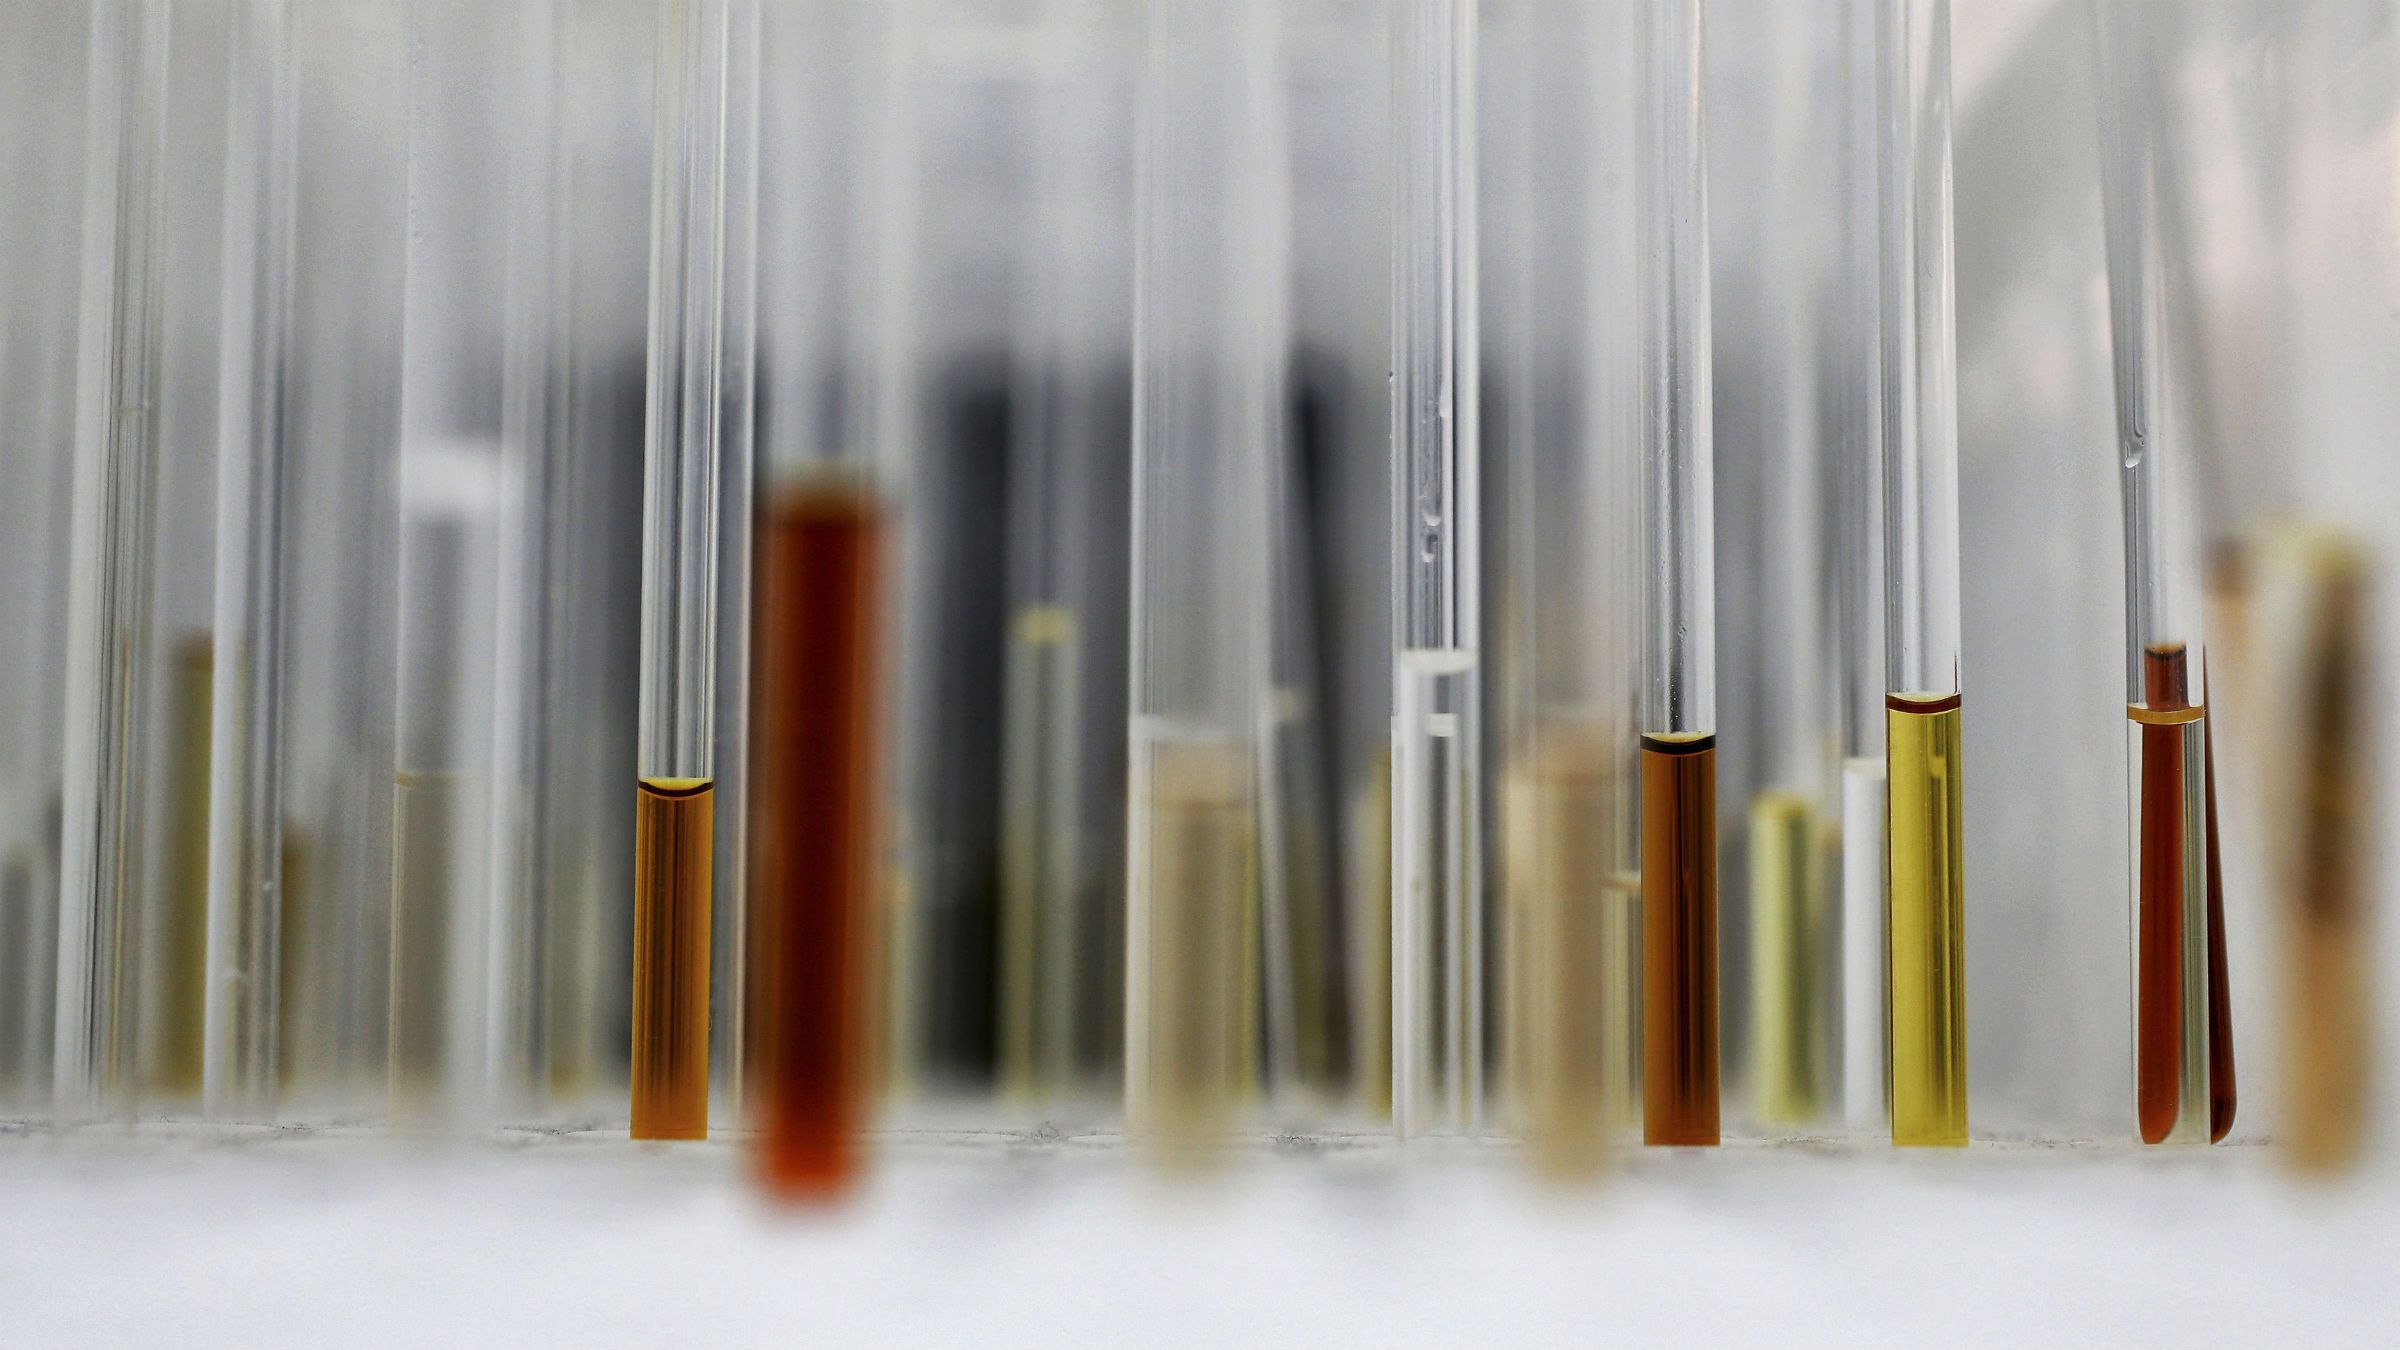 Sample analysis tubes are seen in a lab at the Institute of Cancer Research in Sutton, July 15, 2013. Picture taken July 15, 2013. To match Insight CANCER-DRUGS/ (BRITAIN - Tags: HEALTH SCIENCE TECHNOLOGY)